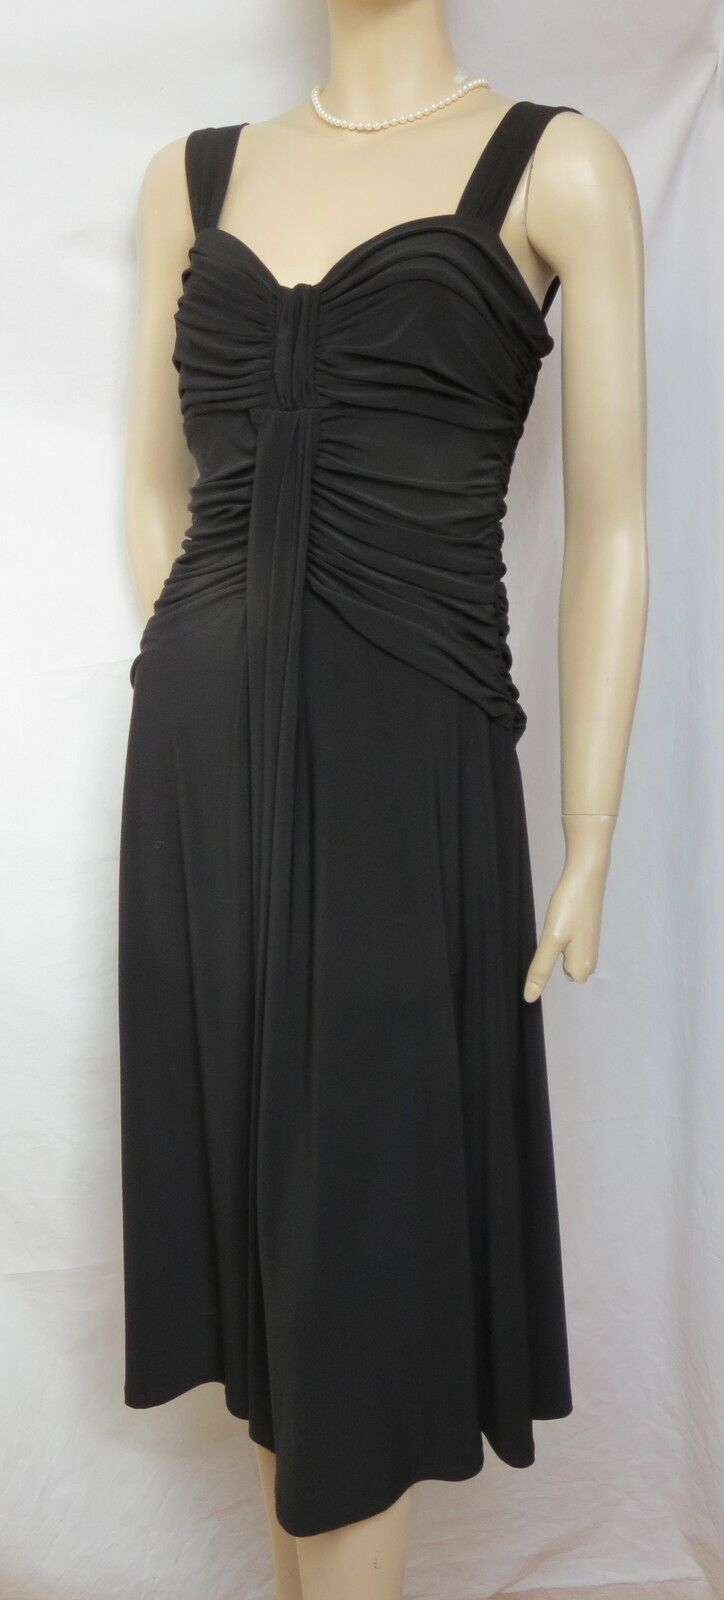 Laura Ashley Kleid 40 Hochzeit schwarz Jersey Wickel-Optik Konfirmation Cocktail